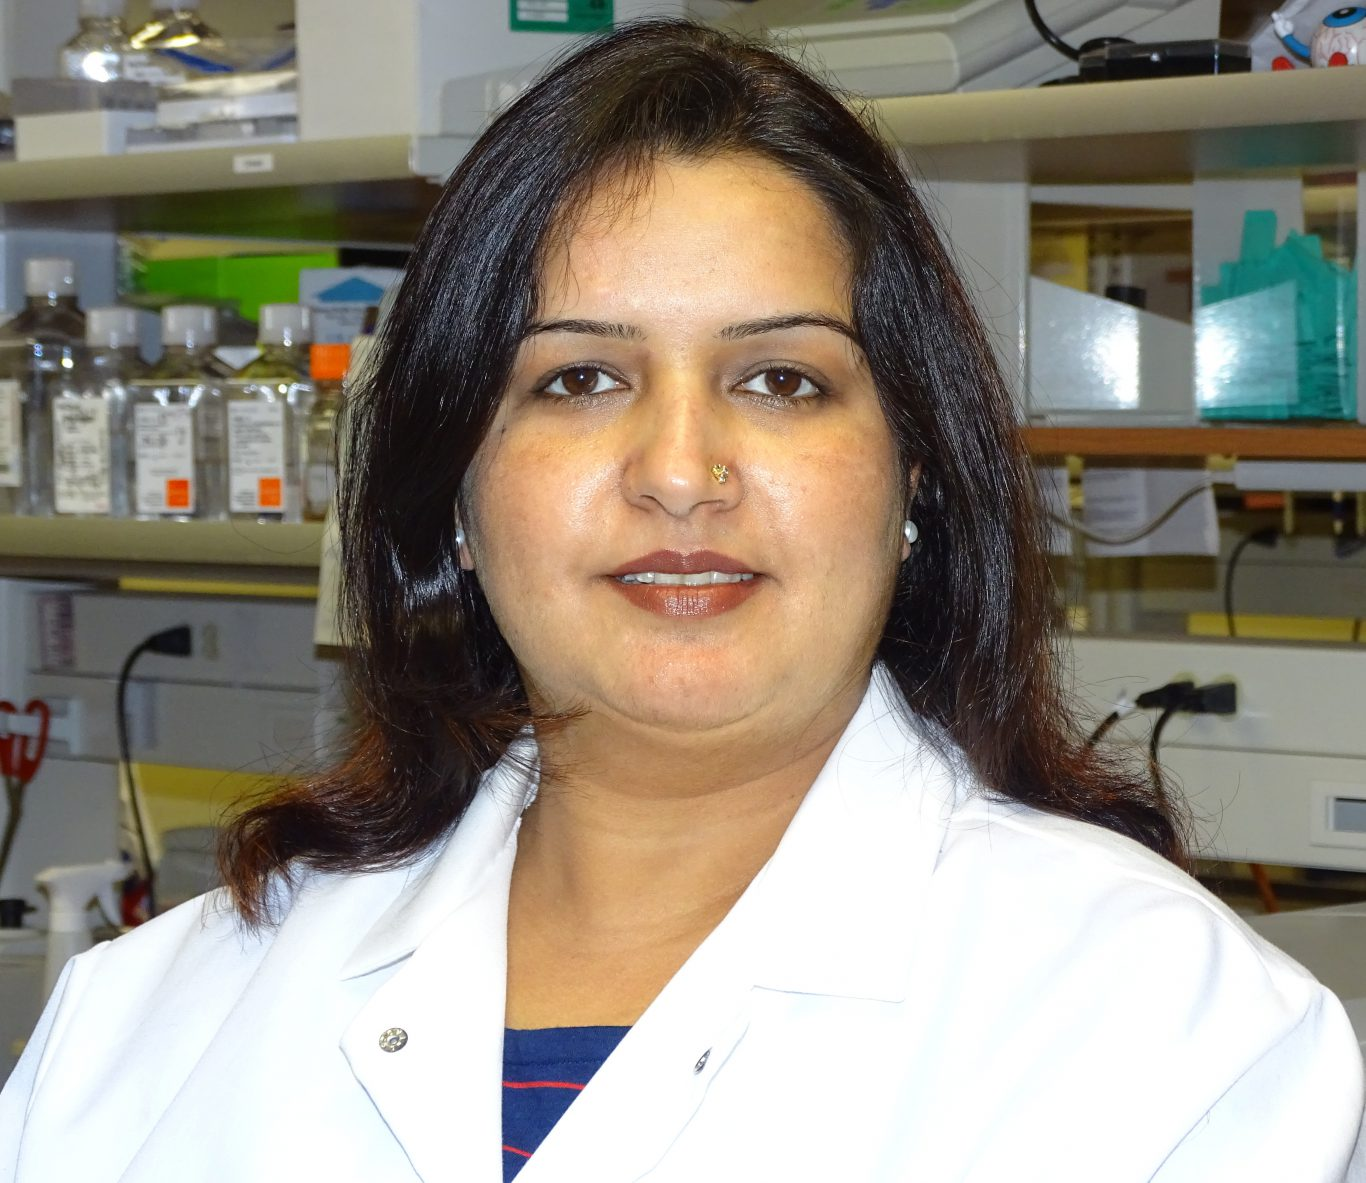 Promising Research to Find Colorectal Cancer Early